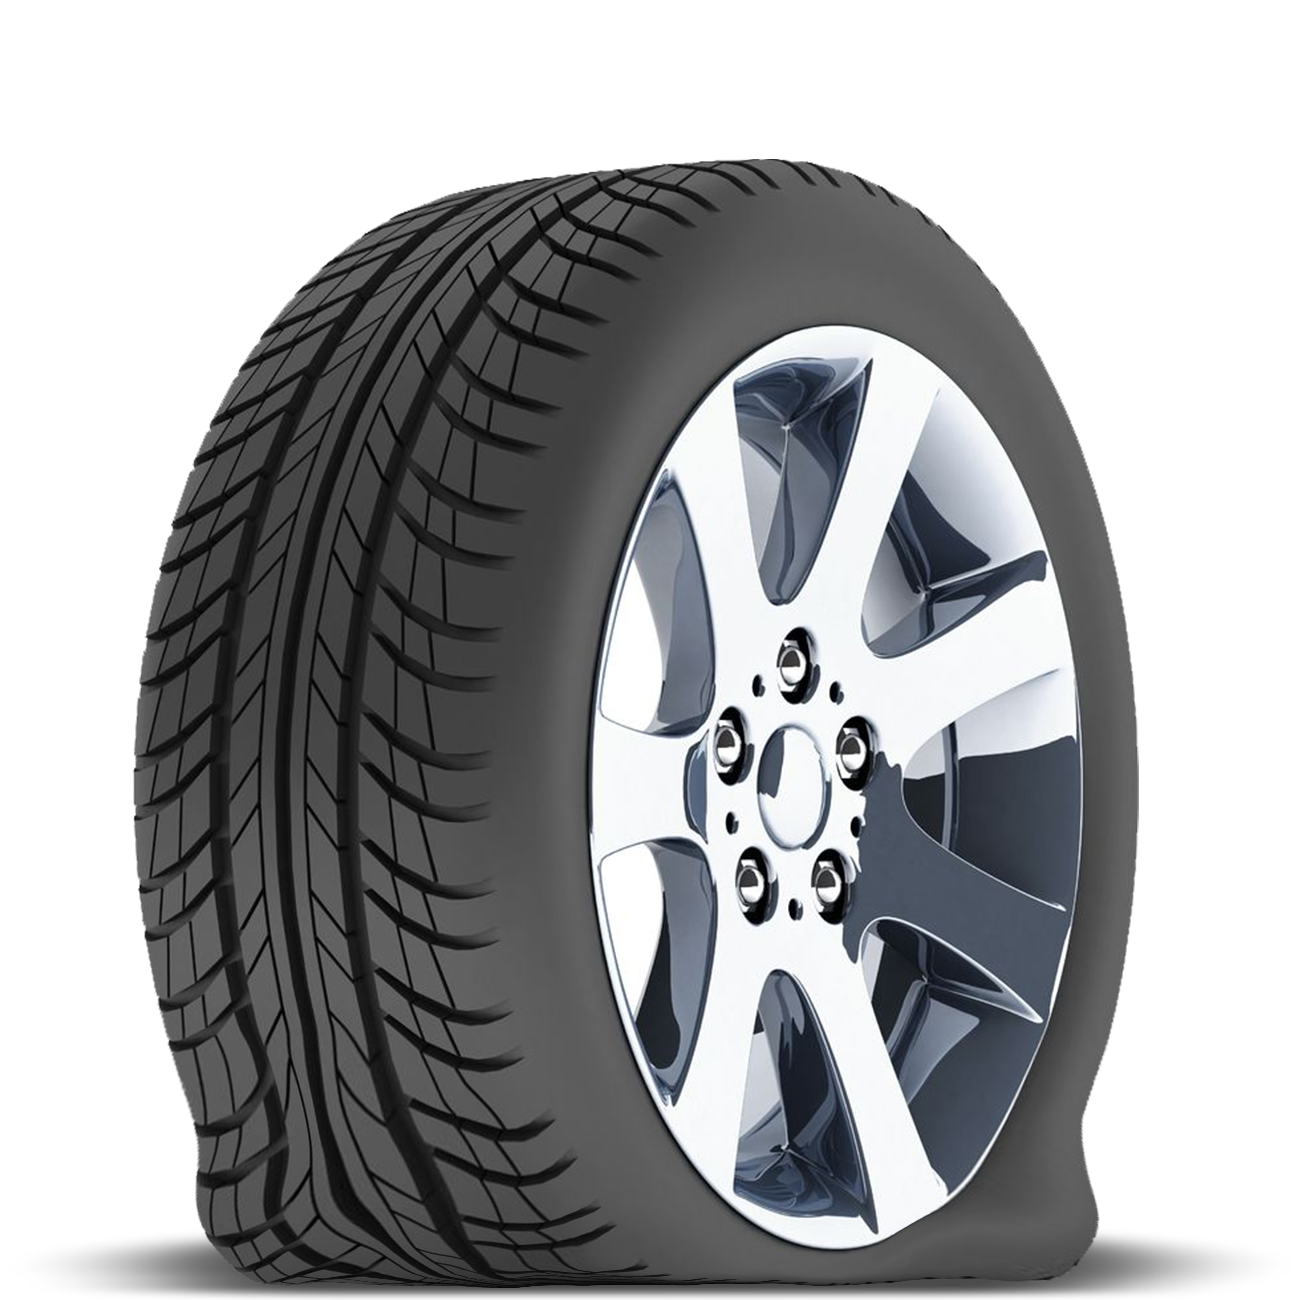 Flat Tyre PNG